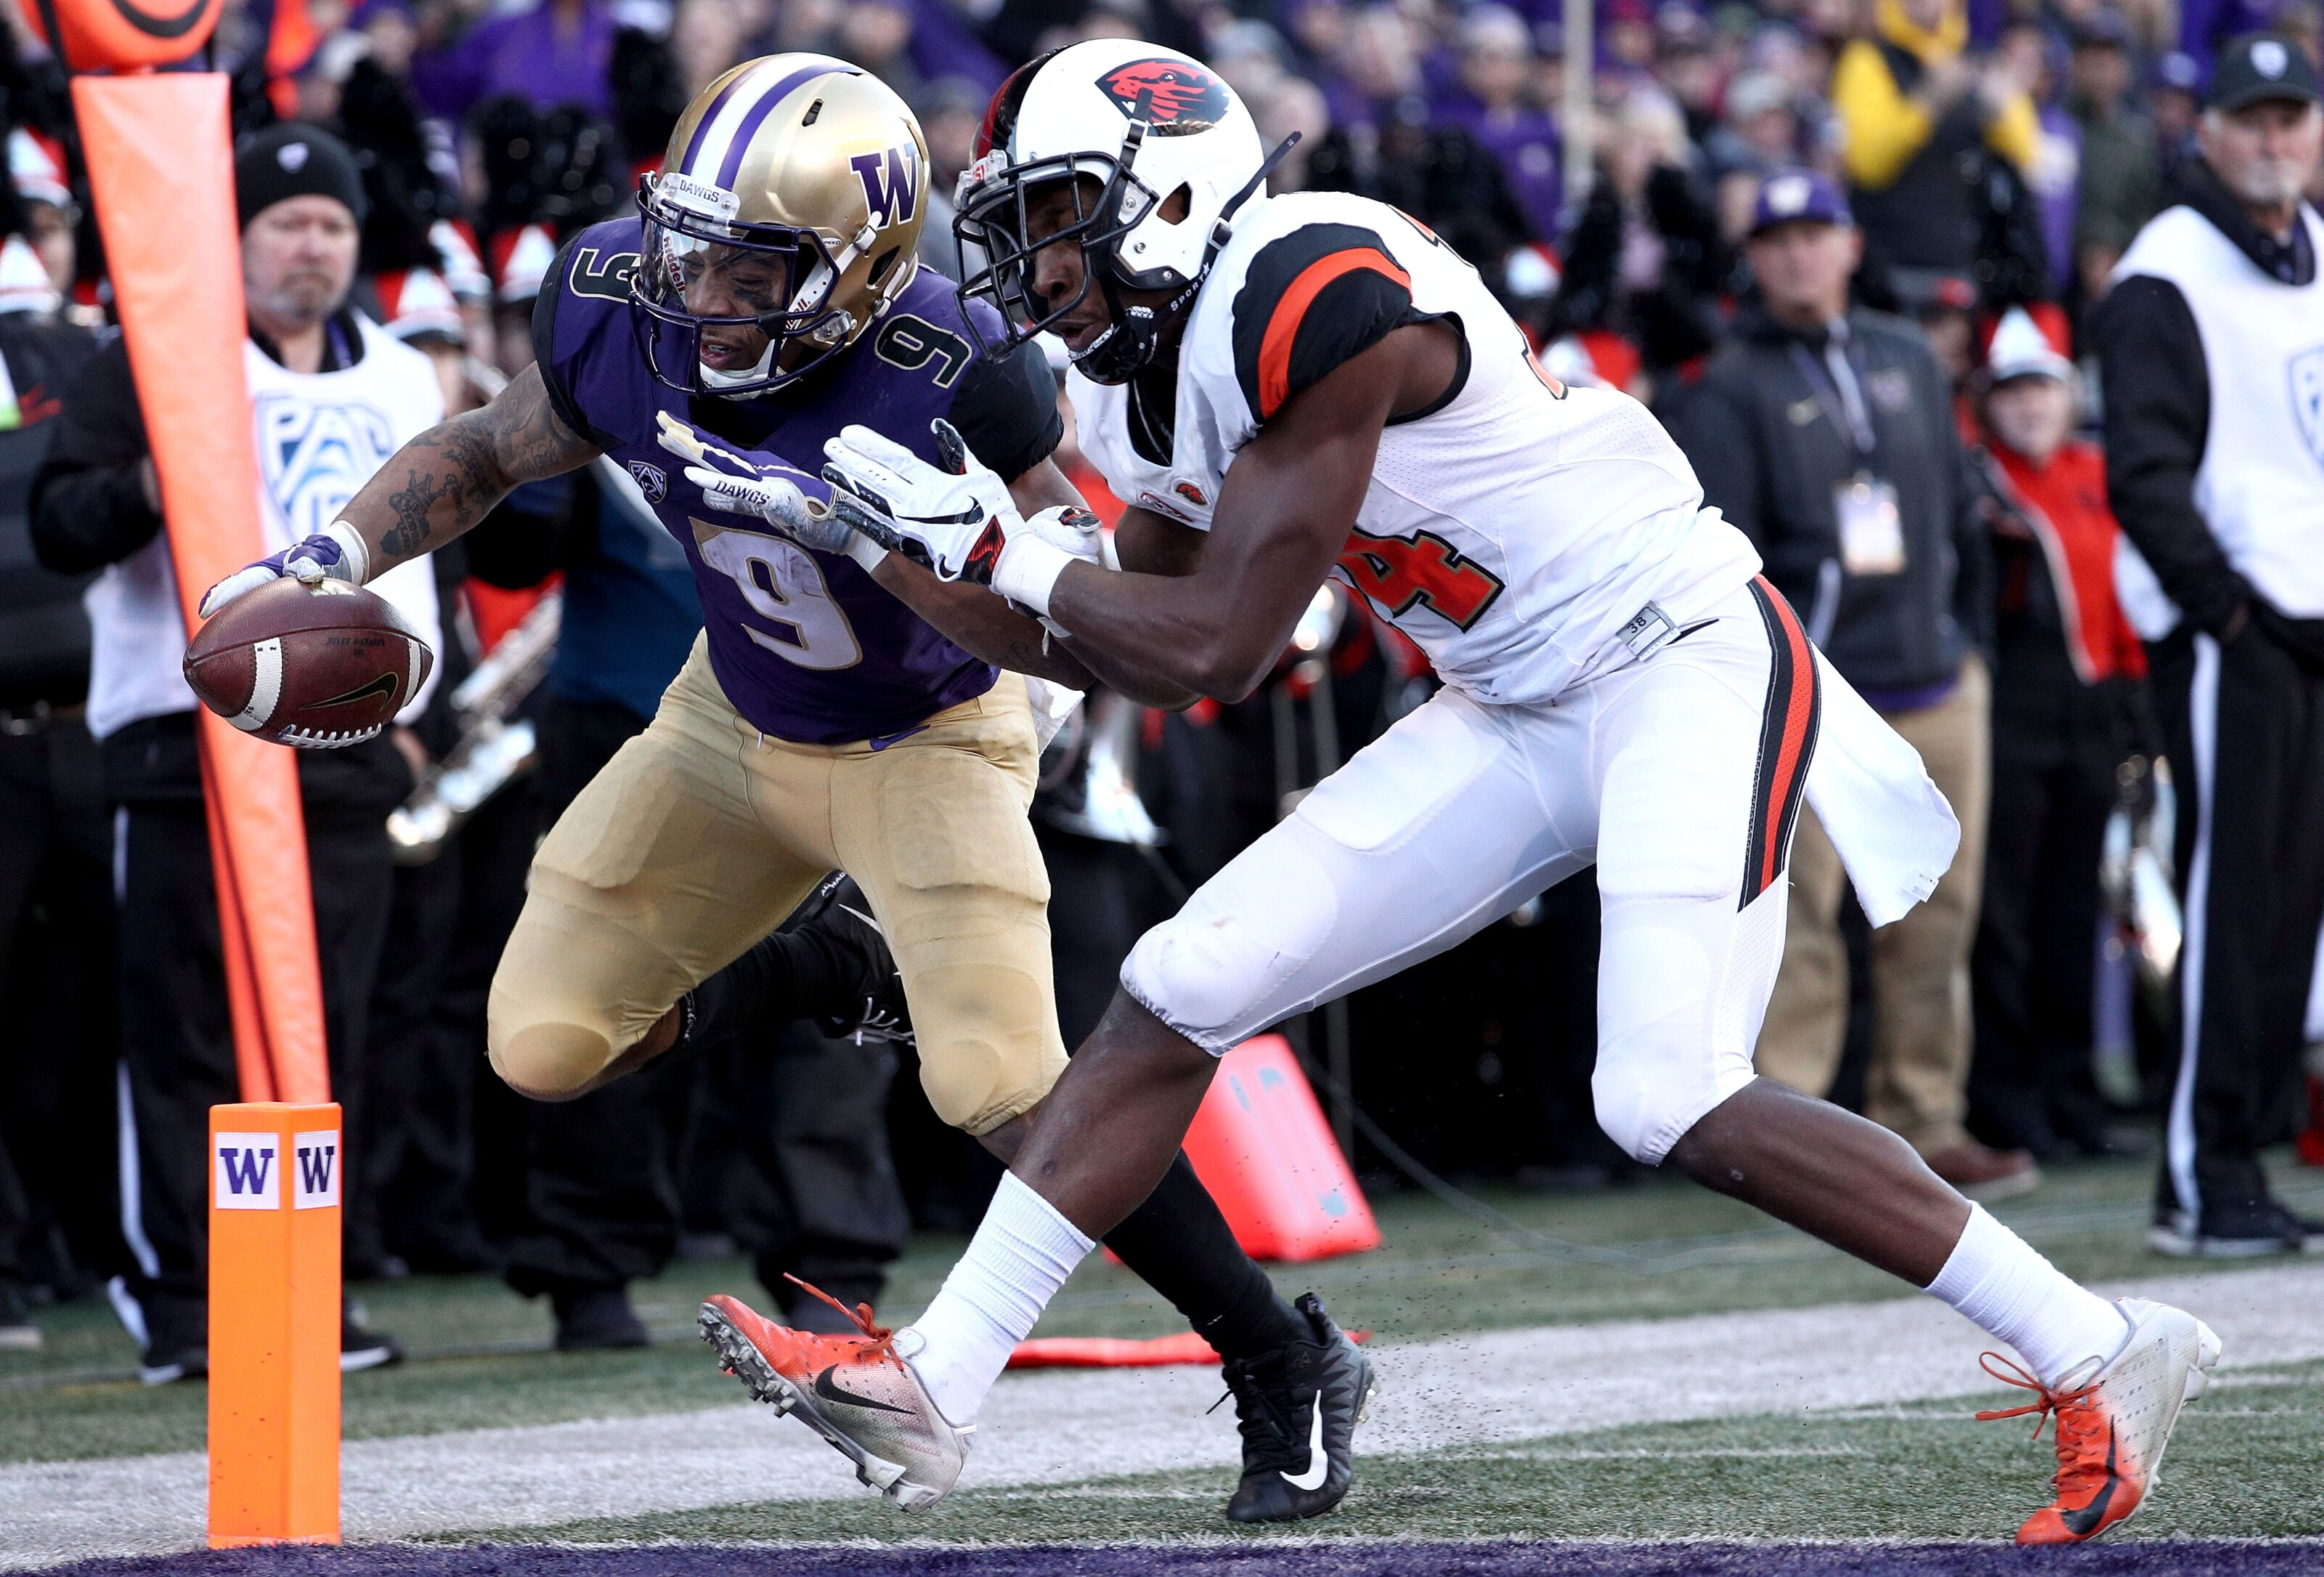 Washington football stays alive in Pac-12 North with win over Oregon State